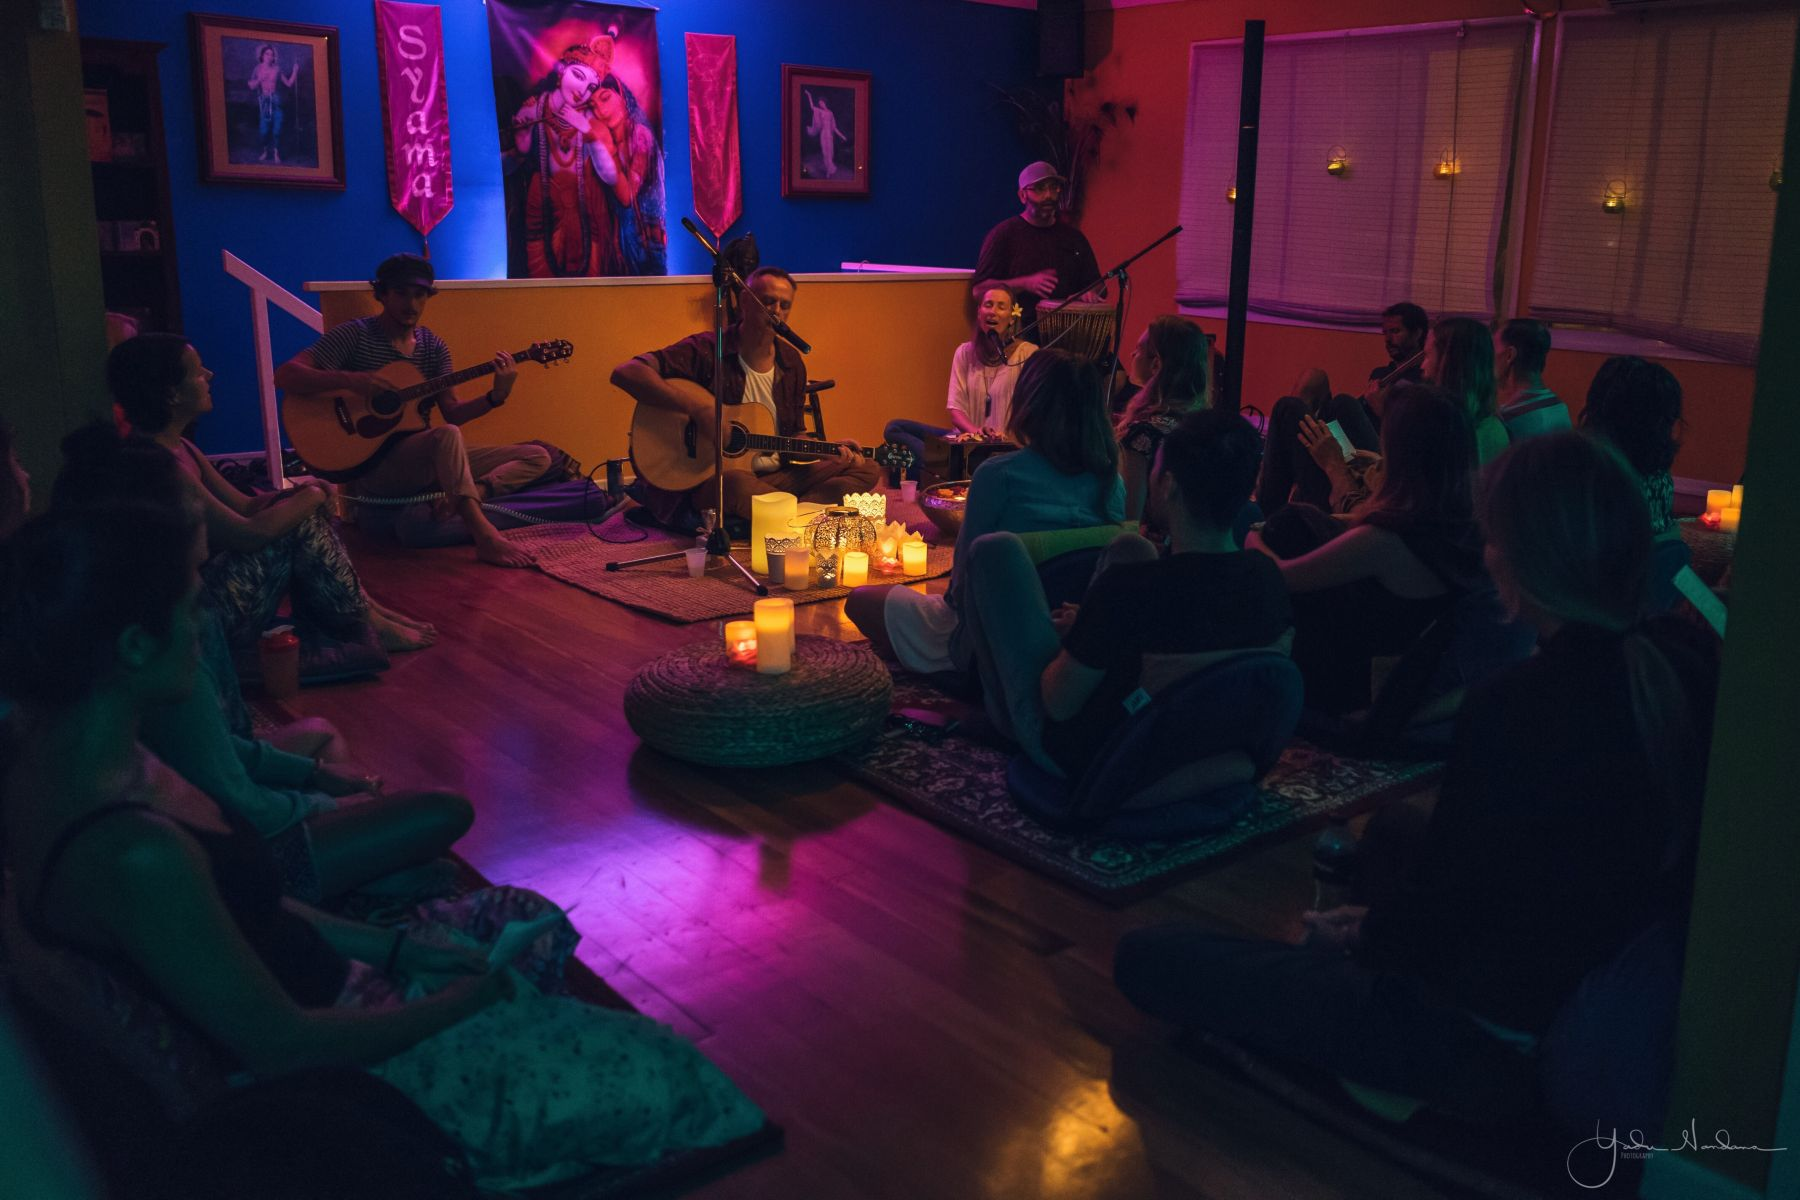 kirtan meditation sacred music community gold coast asmy the mantra room ashraya